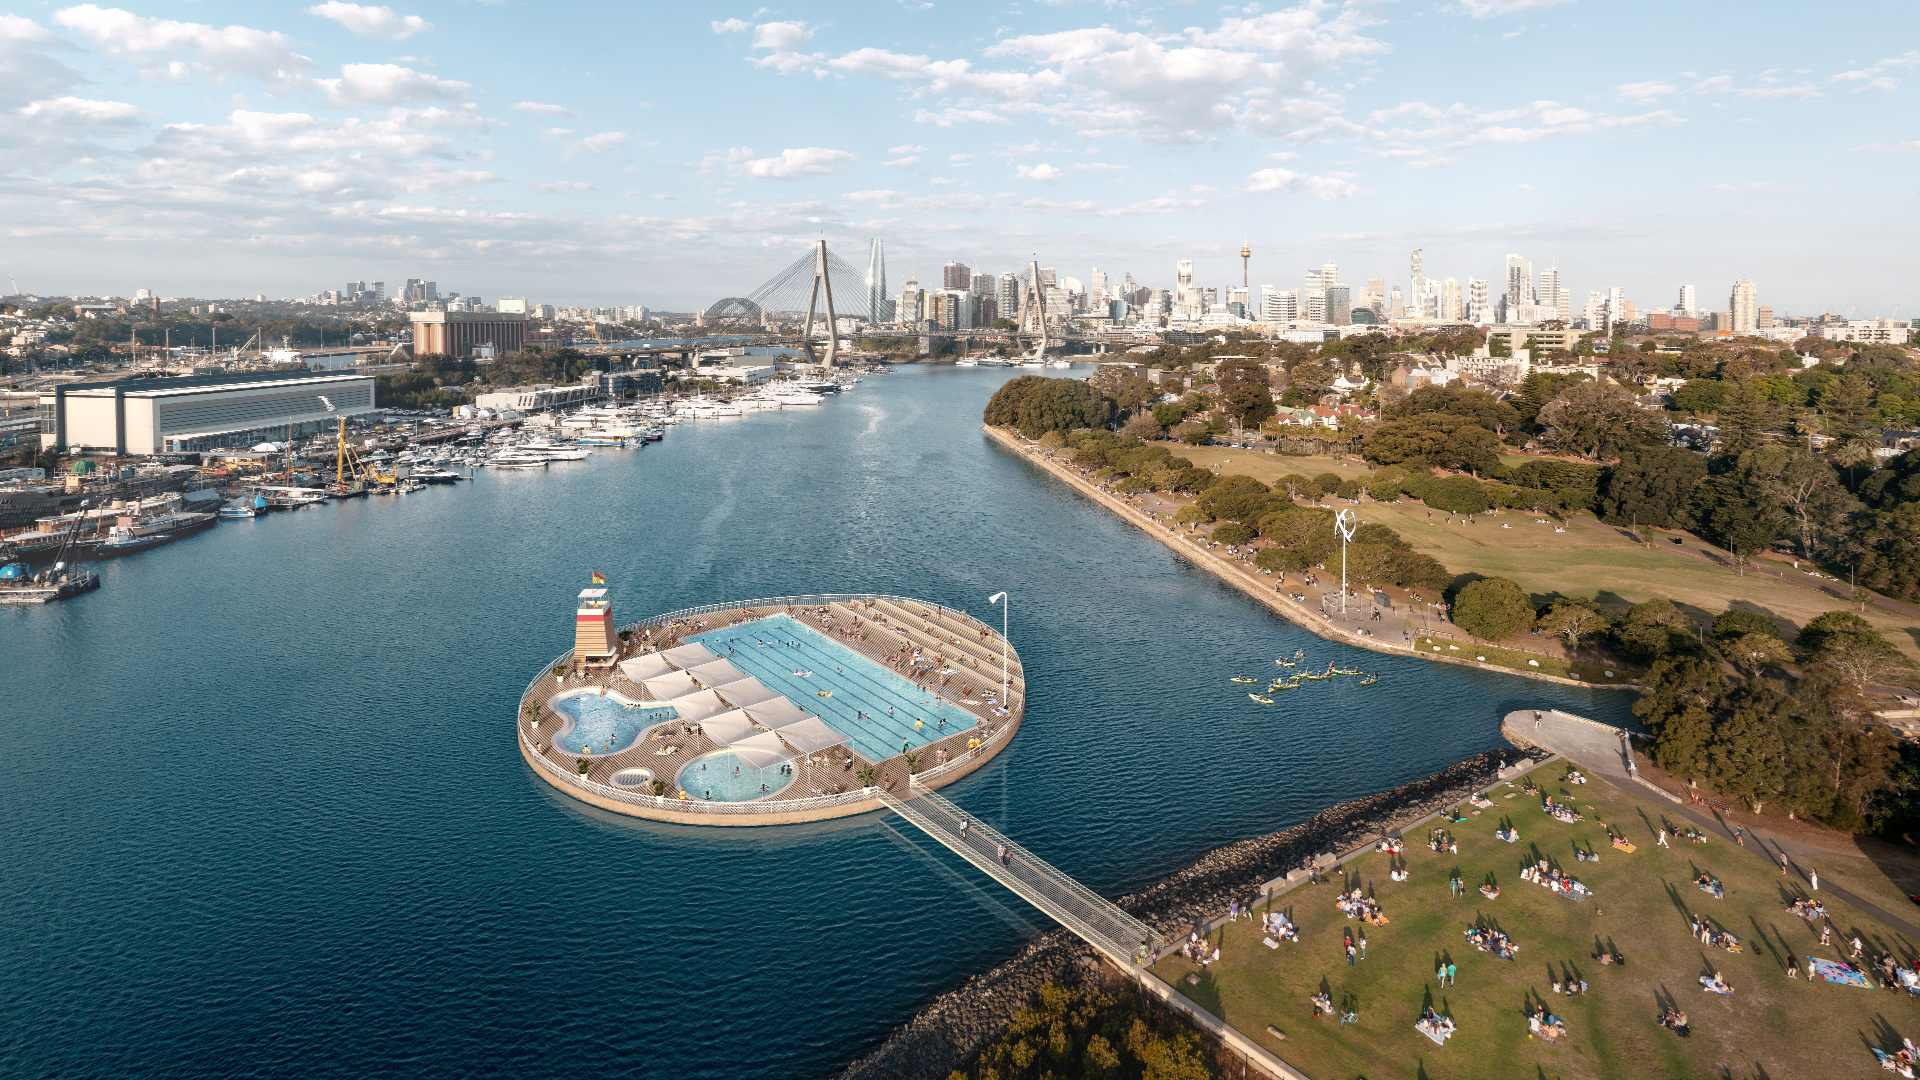 The City of Sydney Is Pushing to Make Sydney Harbour Swimmable with Ocean Pools and Improved Water Quality